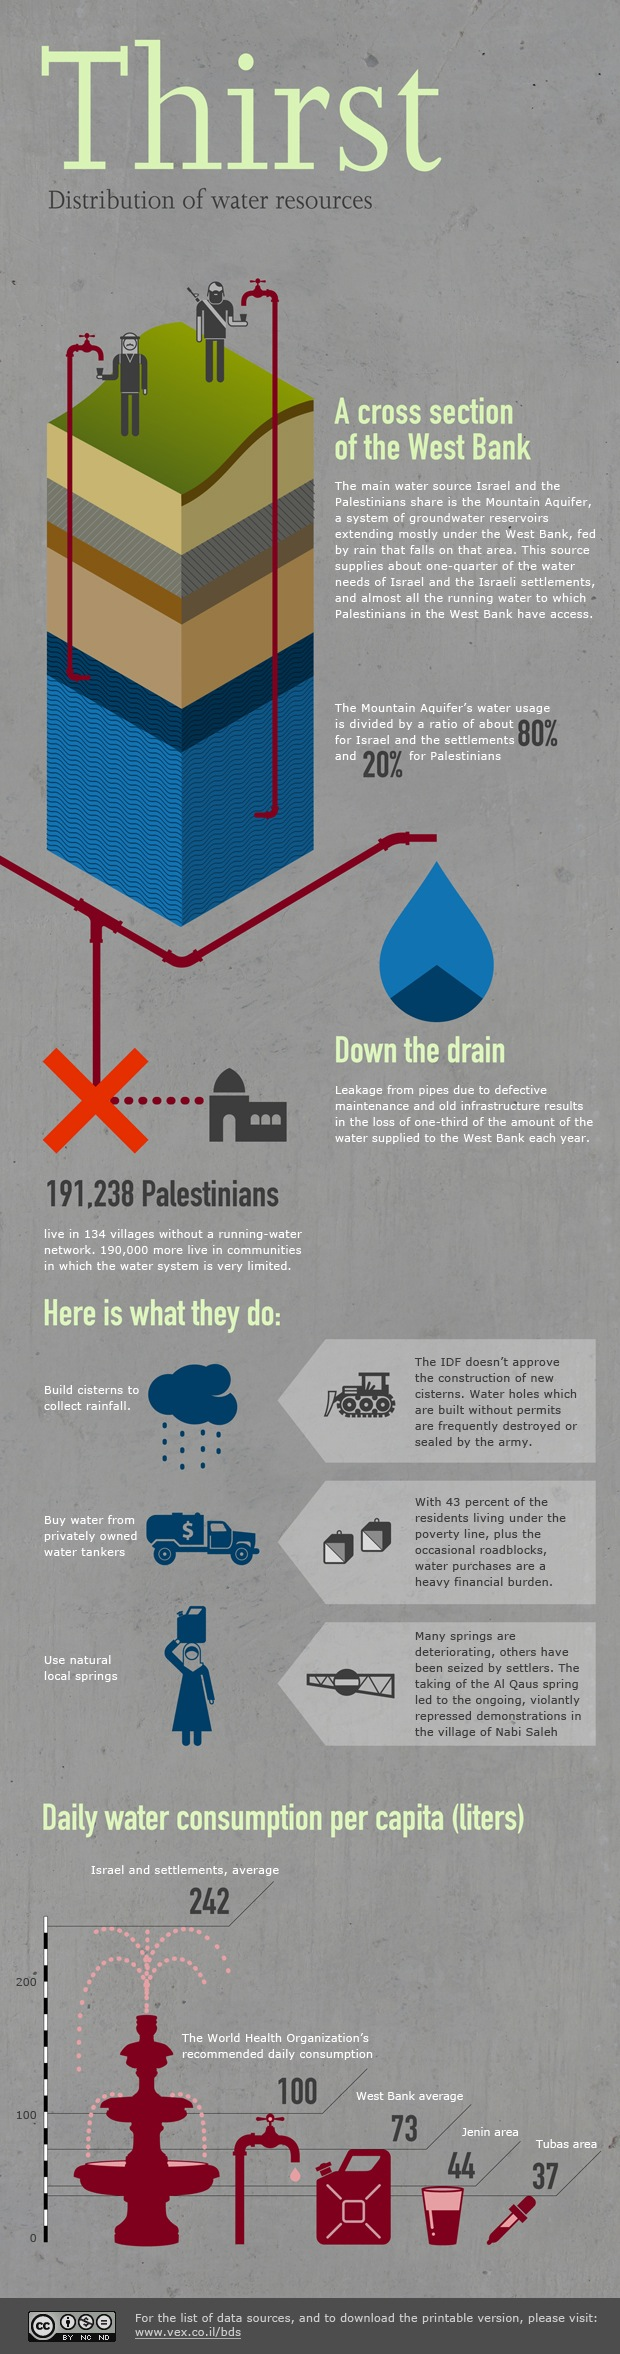 Visualizing Occupation: Distribution of Water